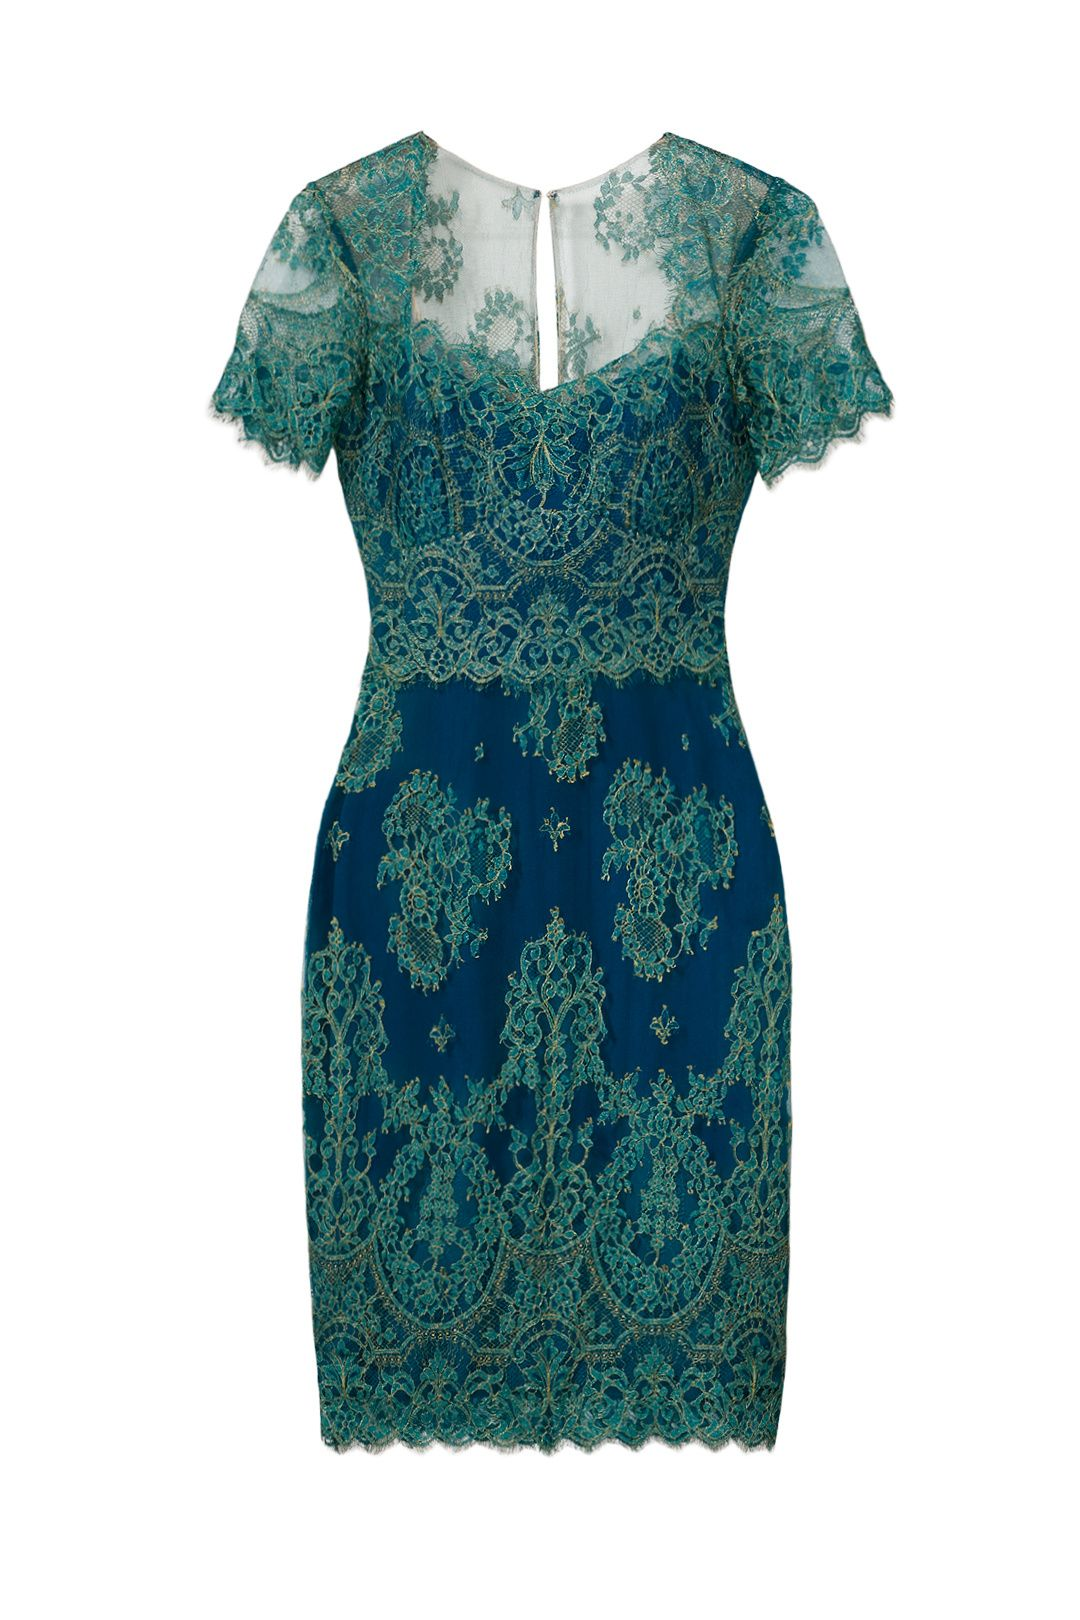 Draped With Lace Sheath by Marchesa Notte for $60 | Rent the Runway ...